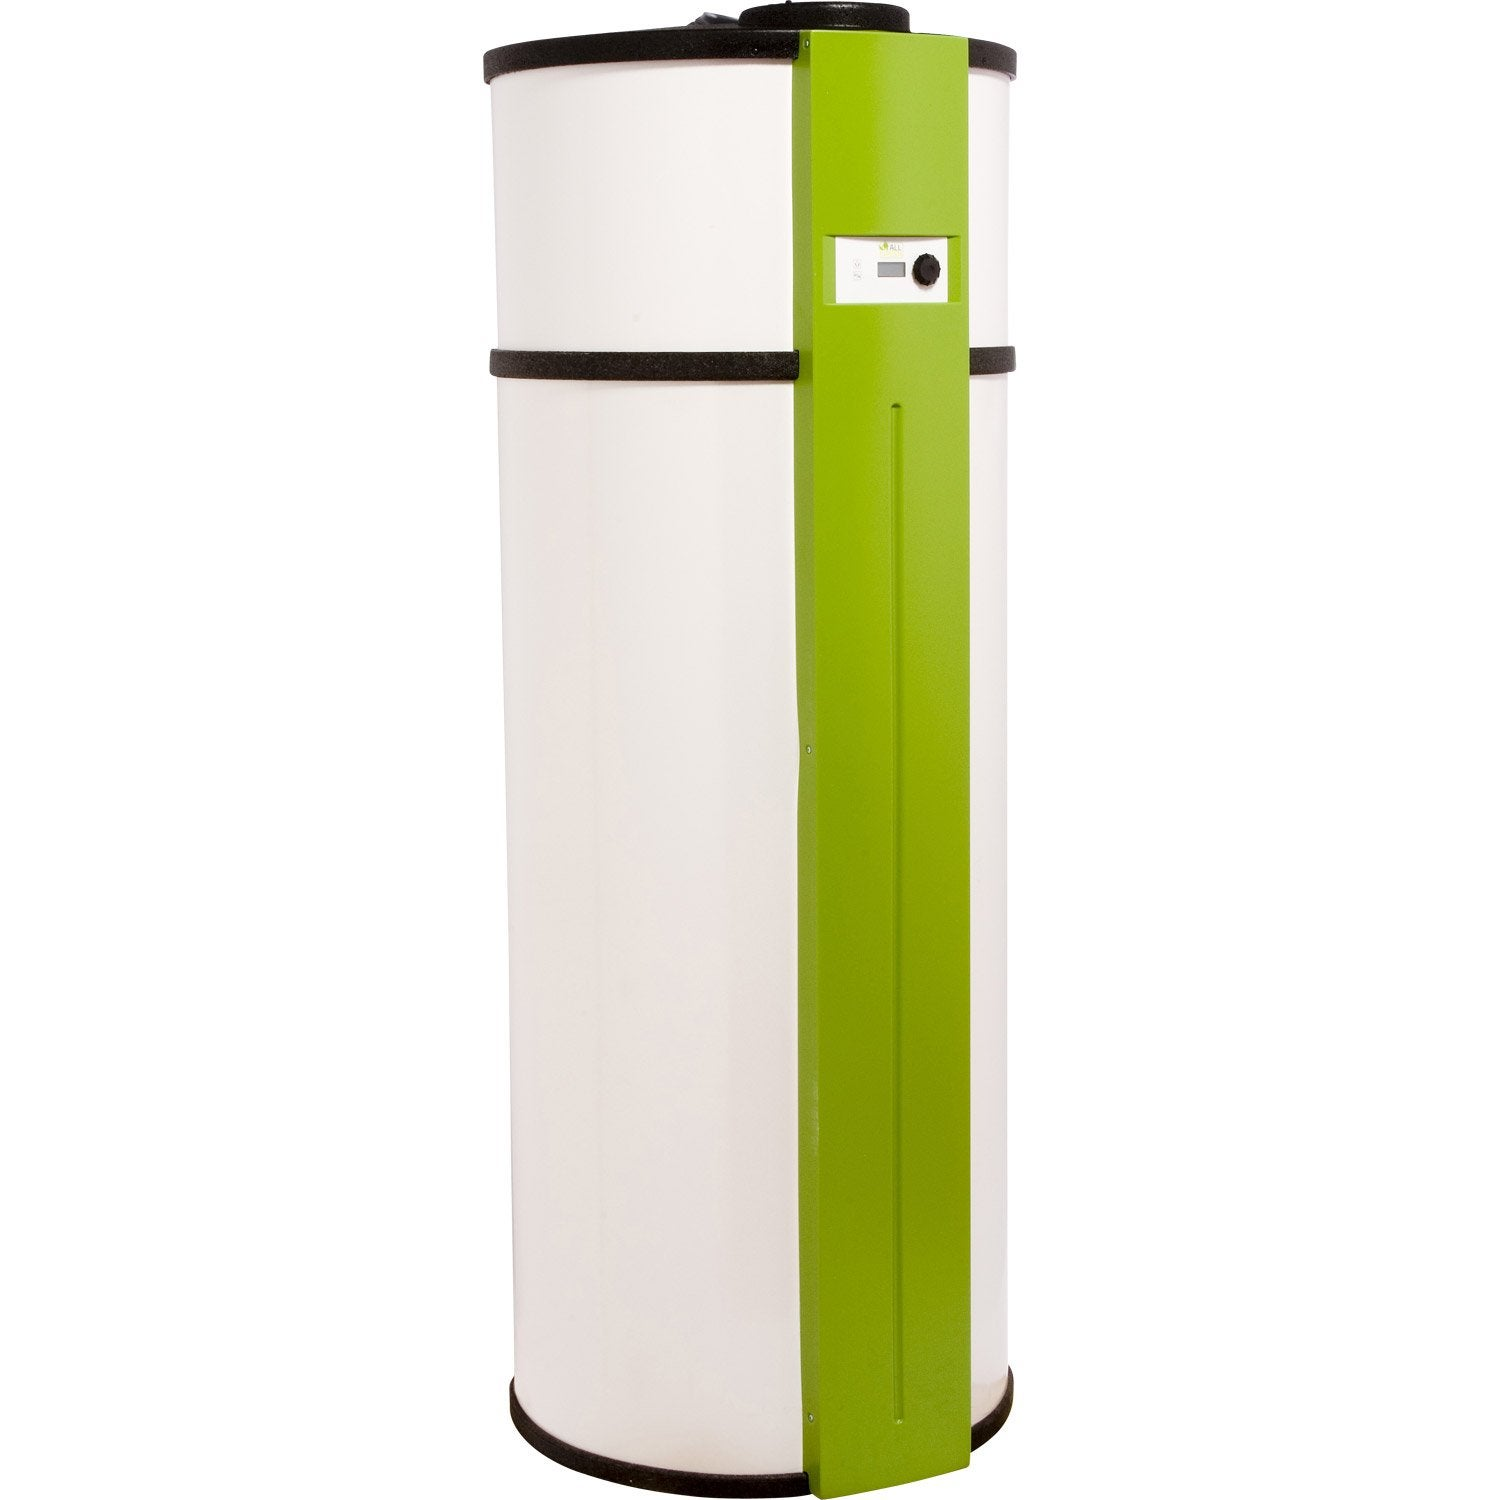 Chauffe eau thermodynamique all green haute performance 270 l leroy merlin - Eau oxygenee leroy merlin ...